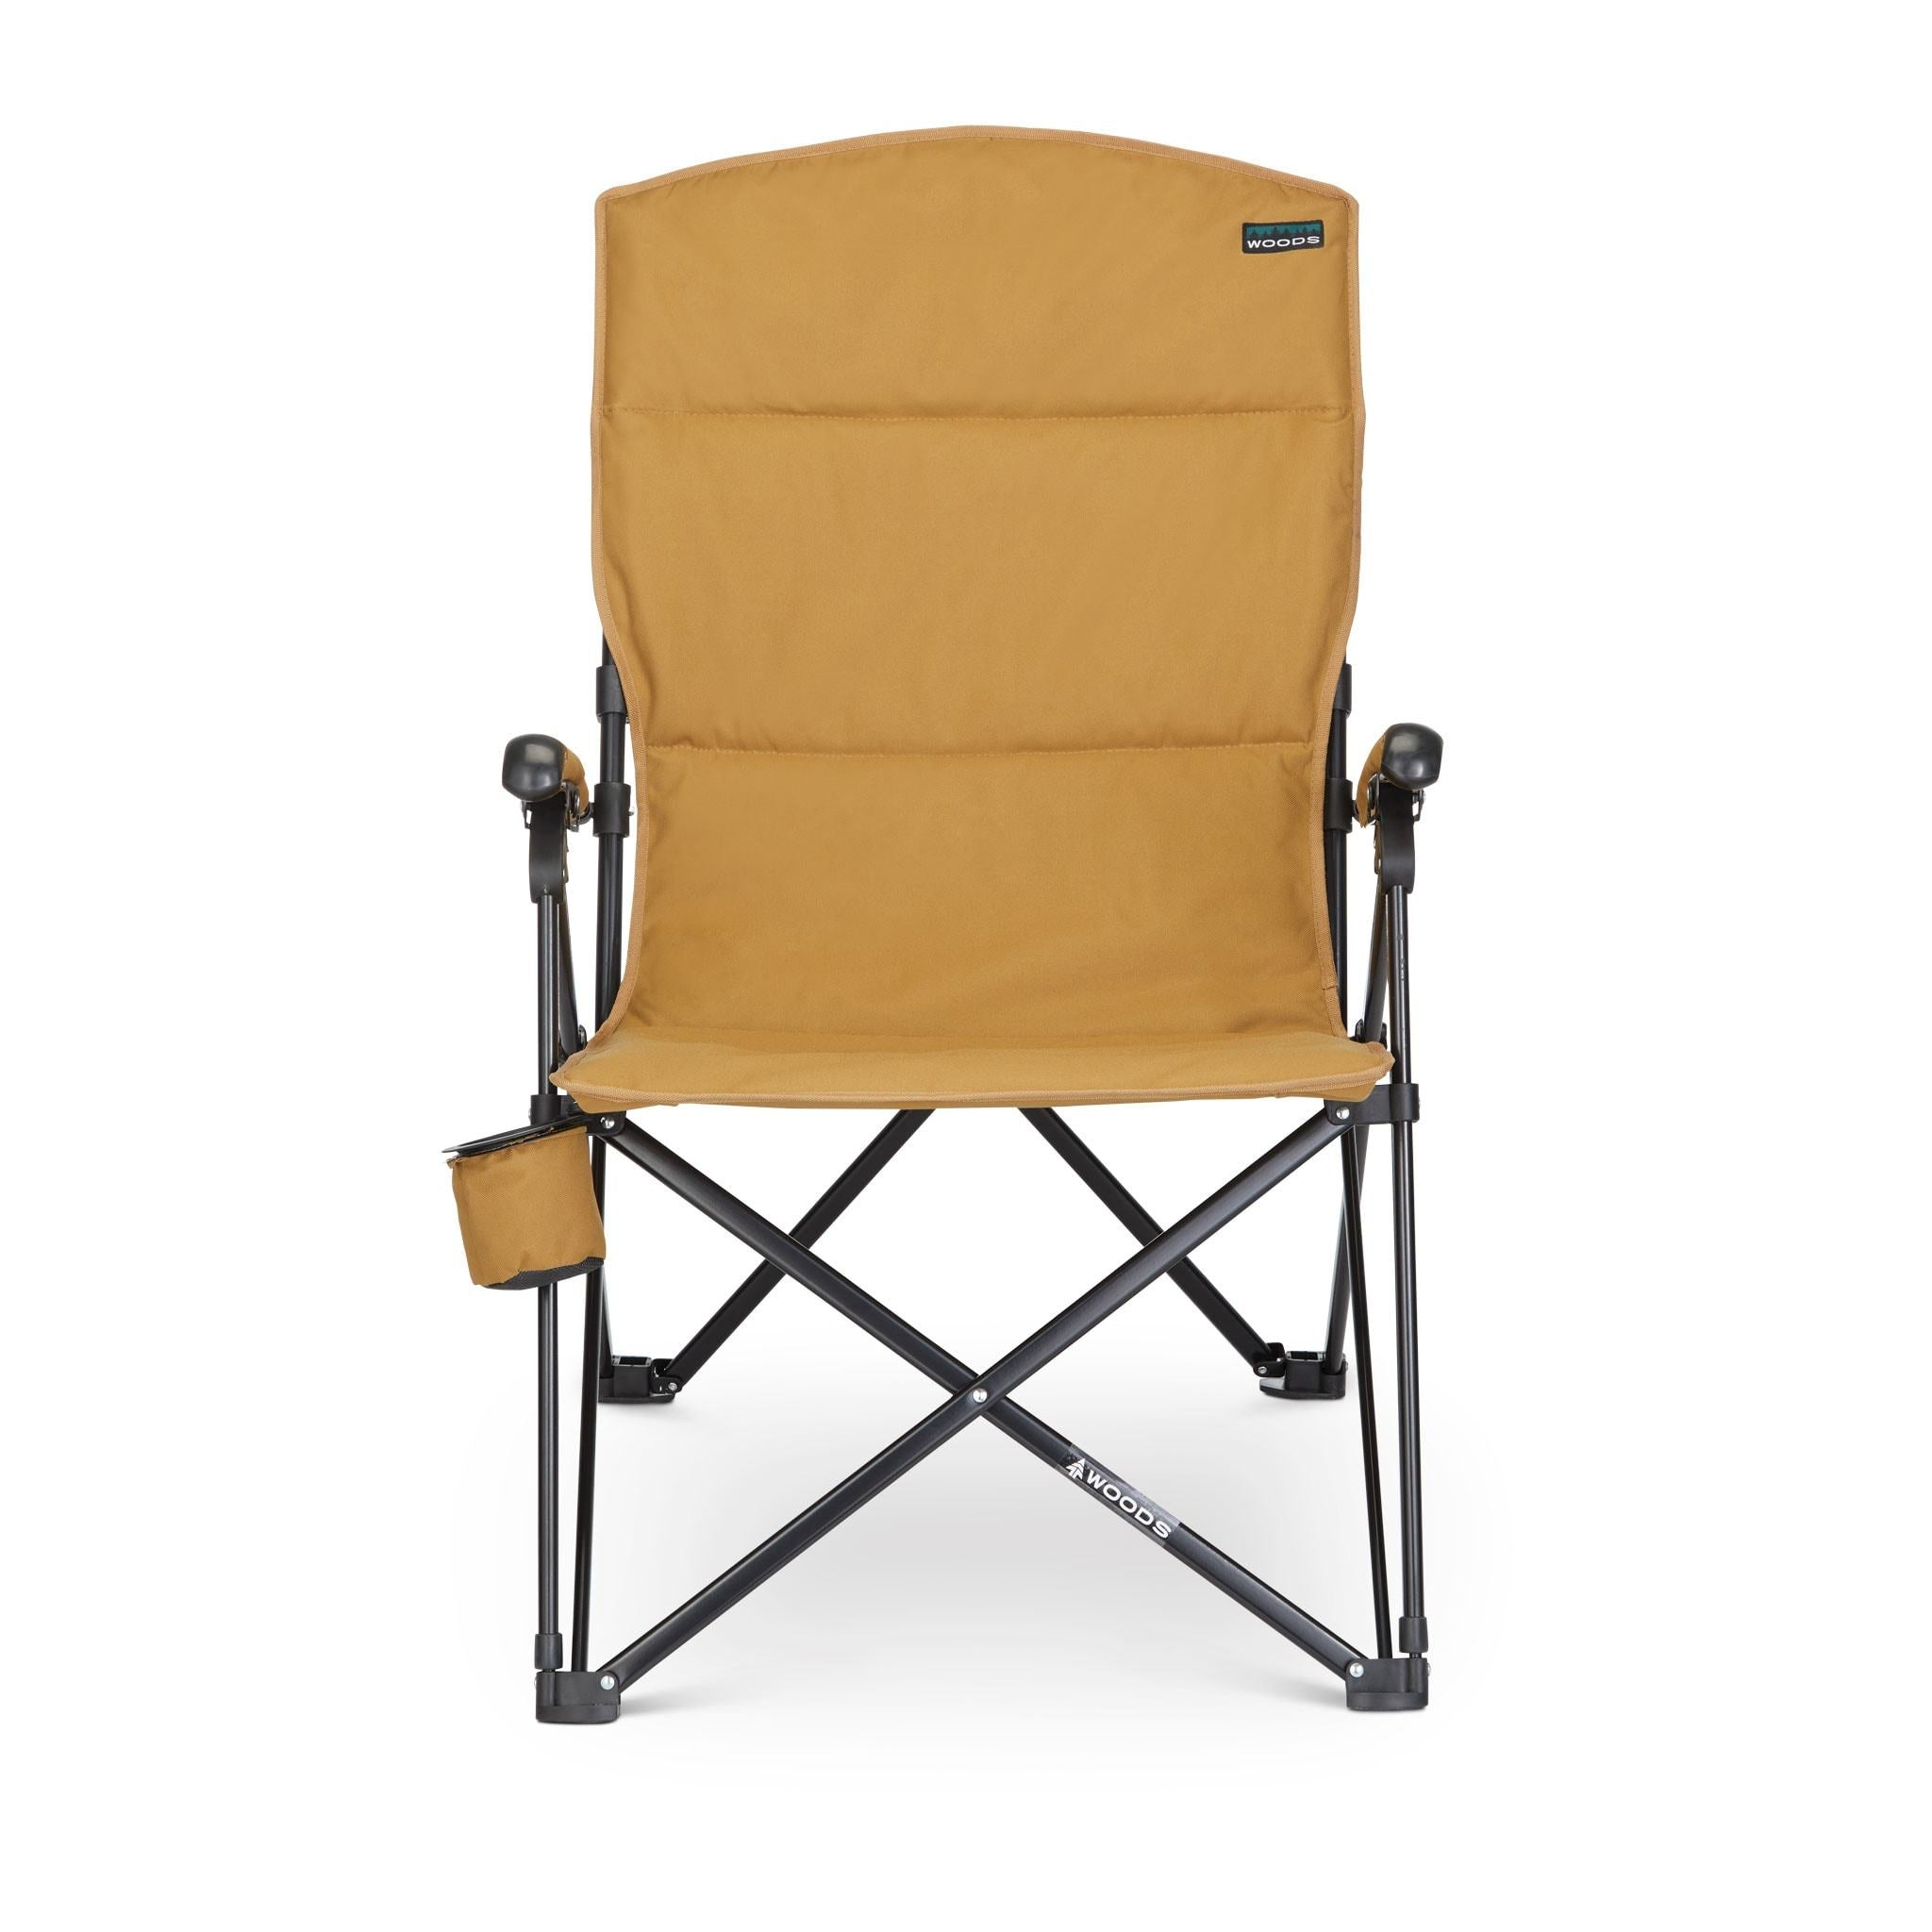 Woods Siesta Folding Reclining Padded Camping Chair Tan